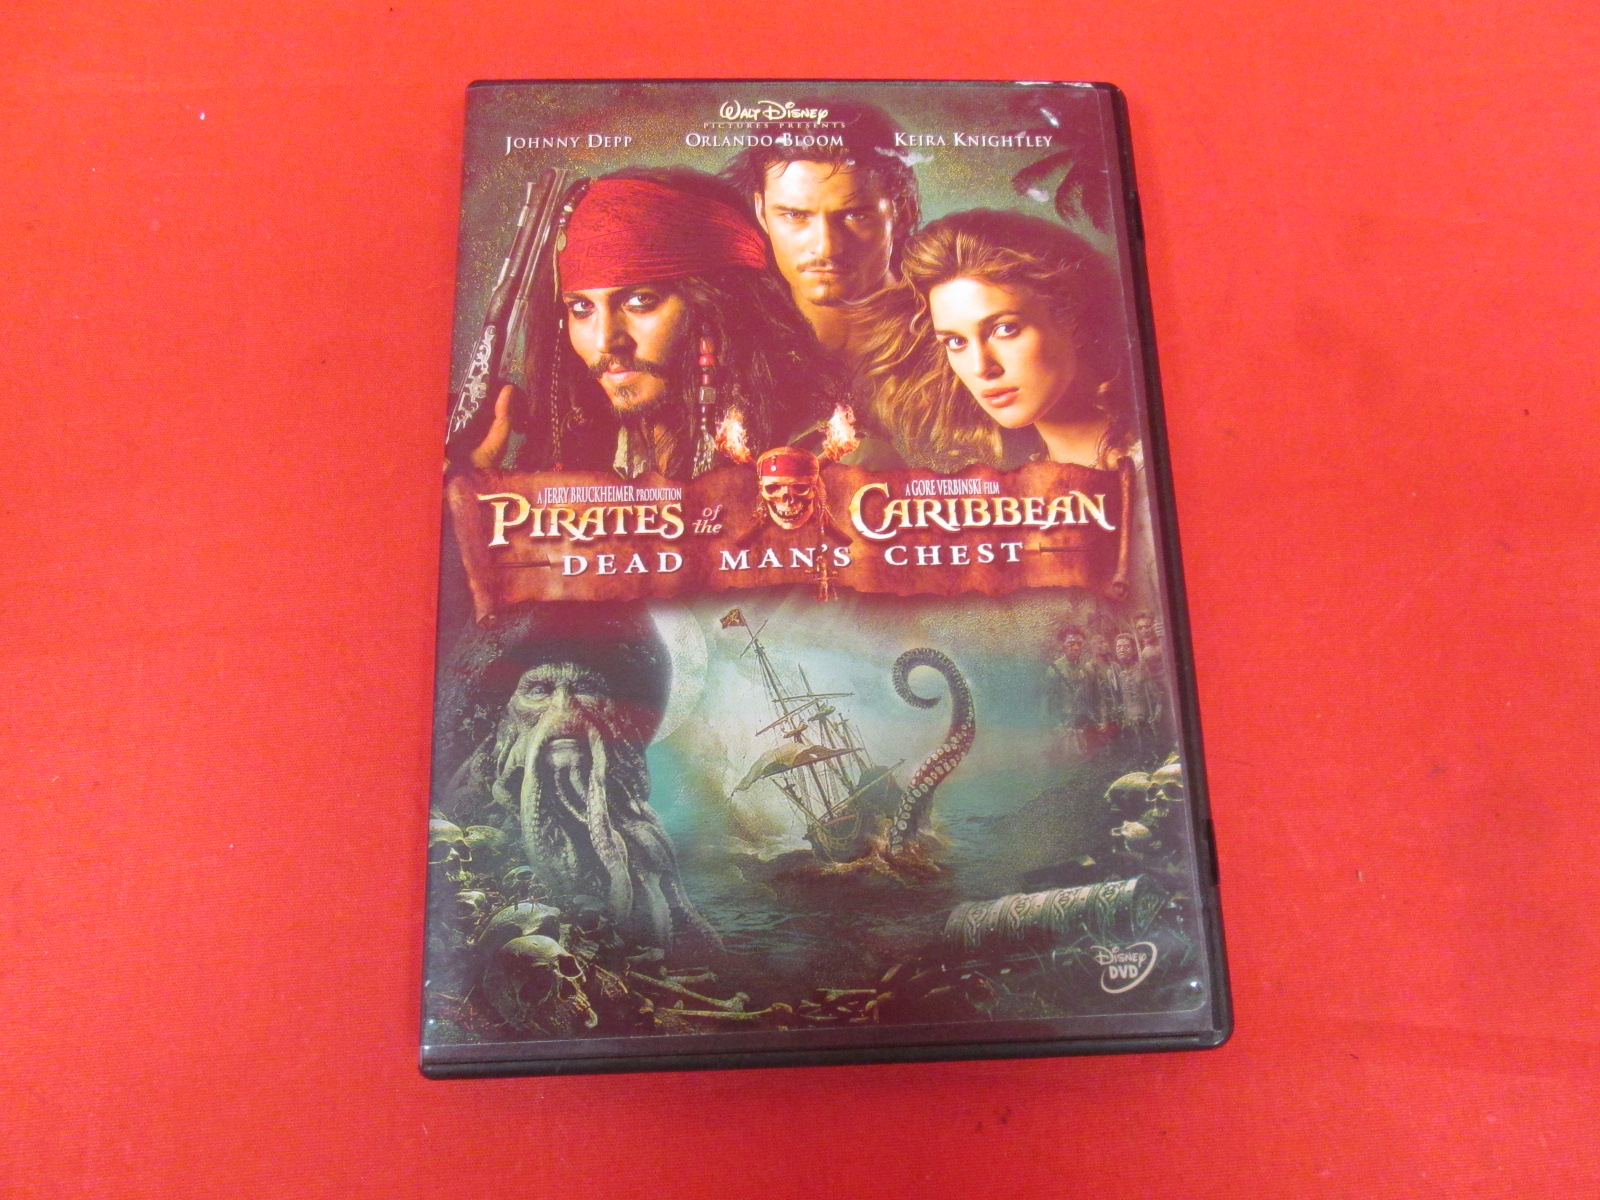 Pirates Of The Caribbean: Dead Man's Chest On DVD With Johnny Depp